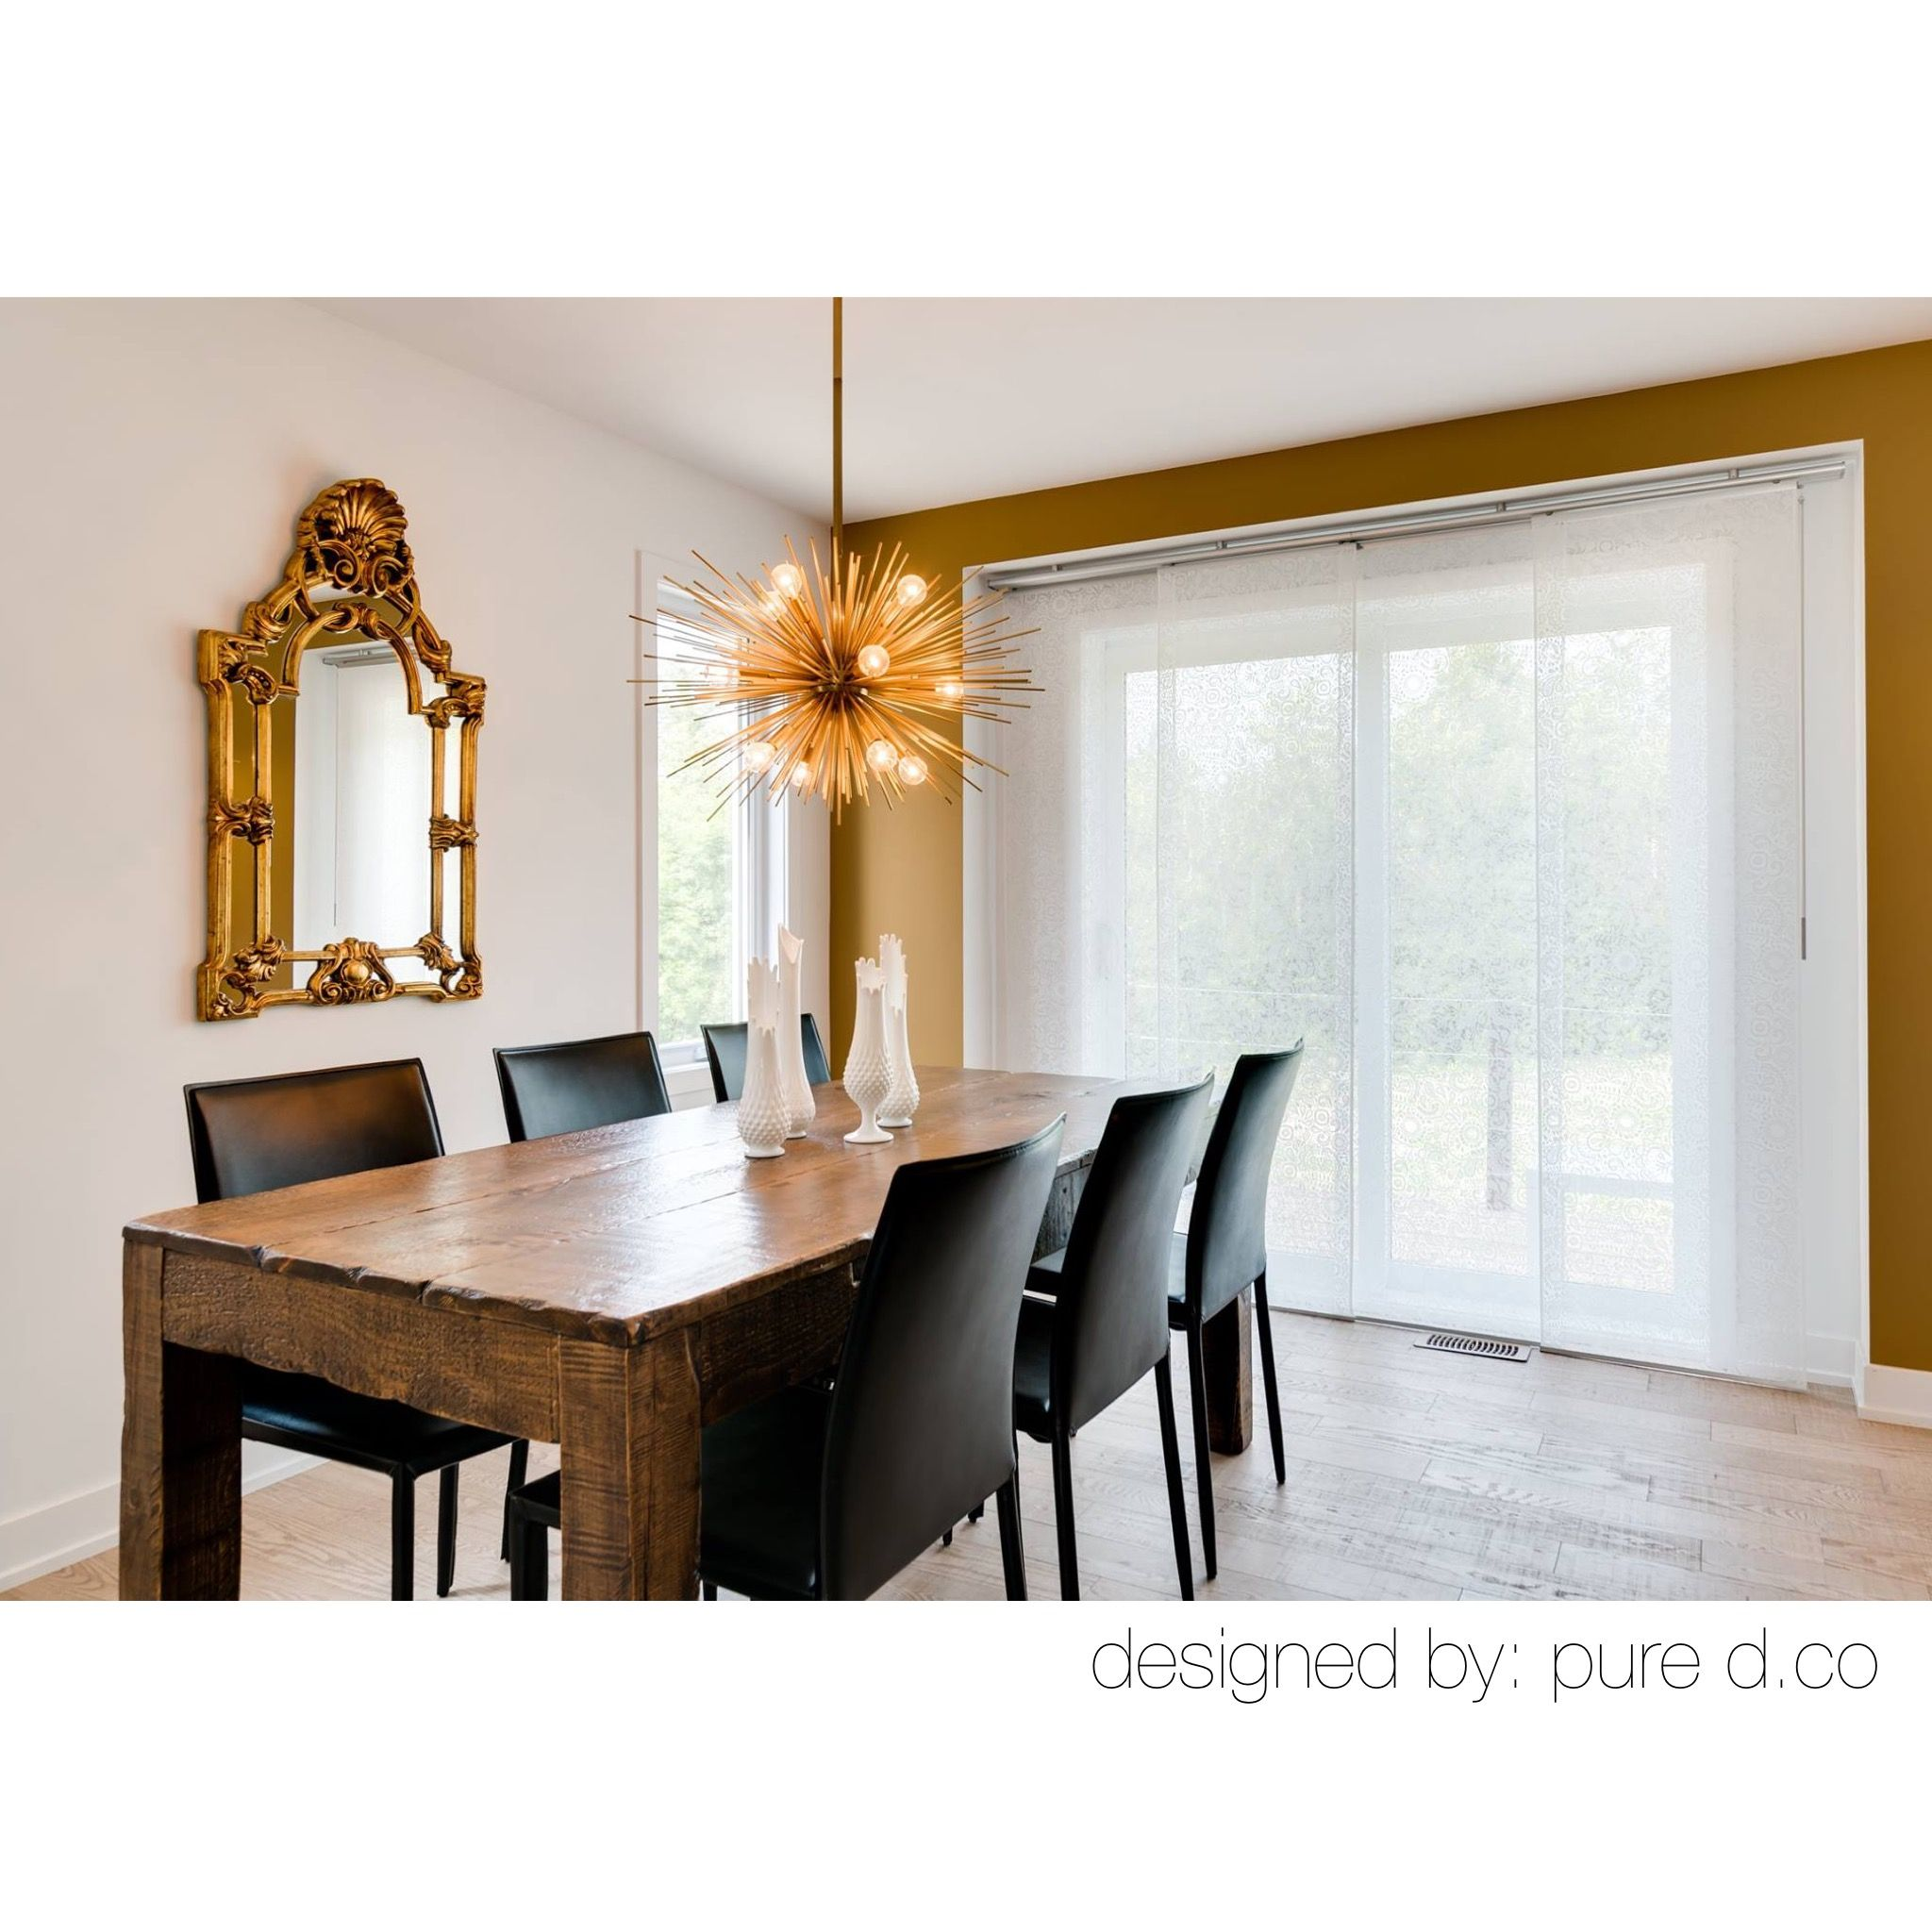 White And Gold Dining Room By Ppryce From Pure D Co It Makes Our